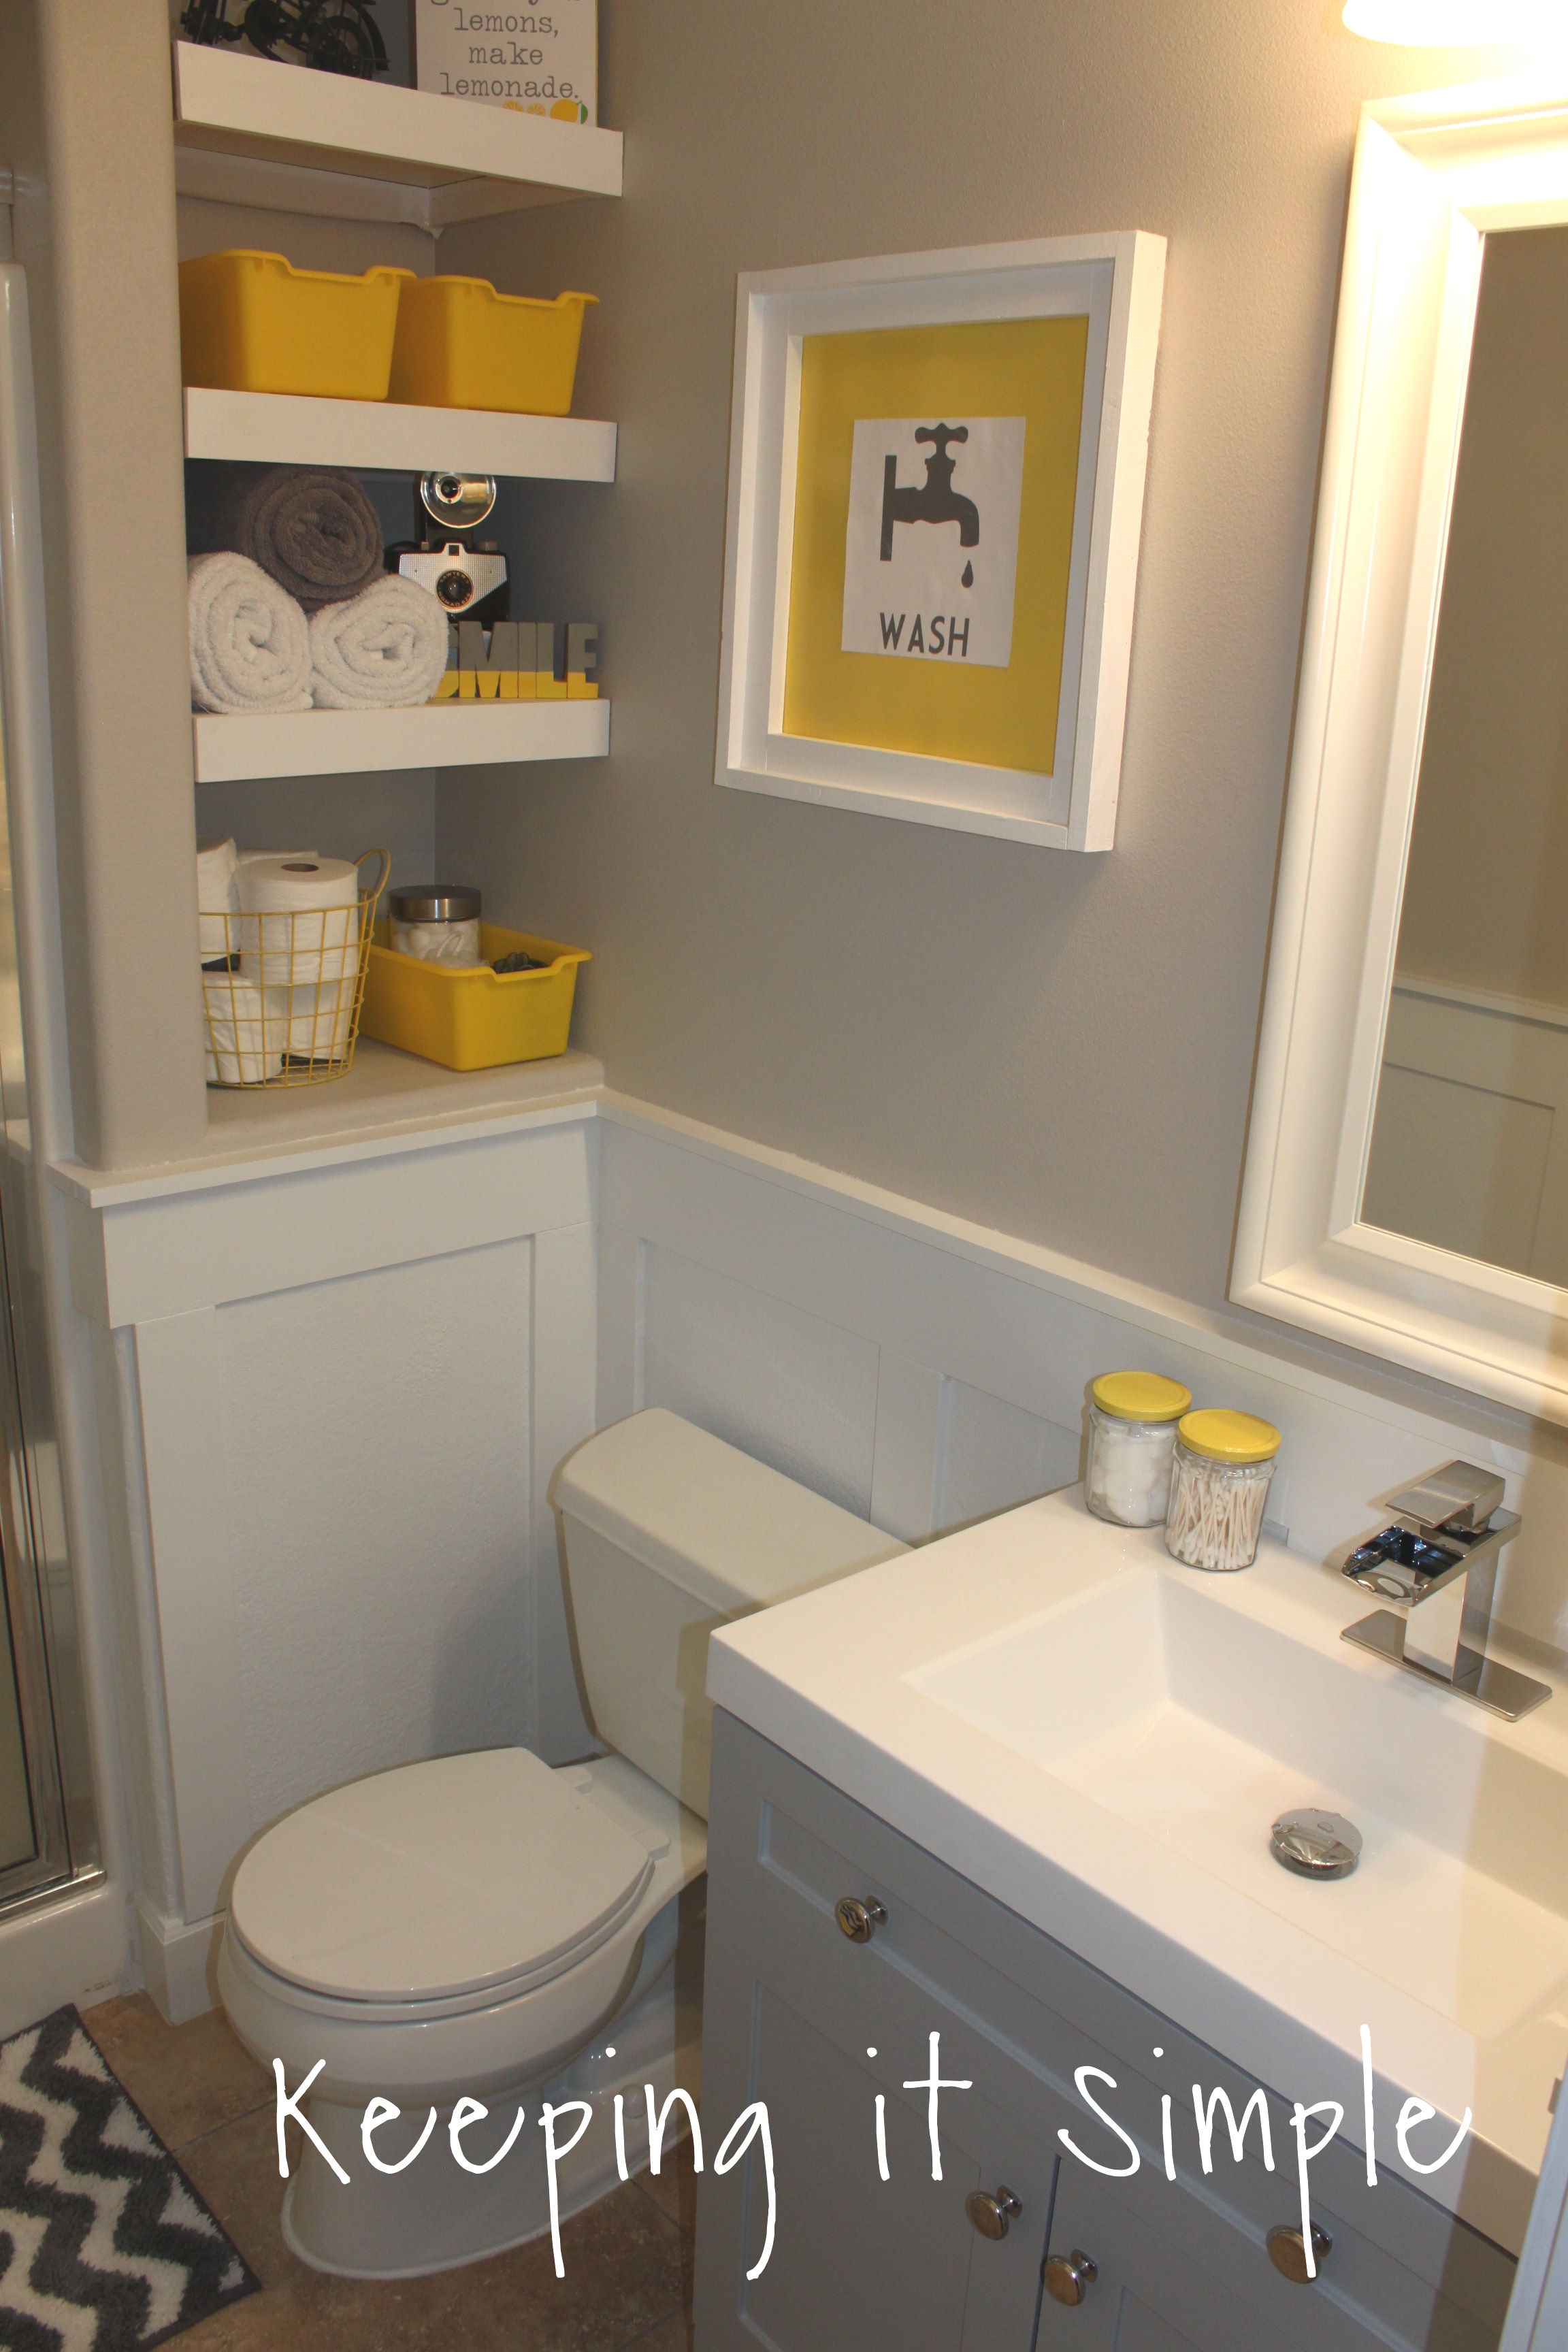 small-bathroom-makeover-ideas-yellow-and-gray (244)24 • Keeping it